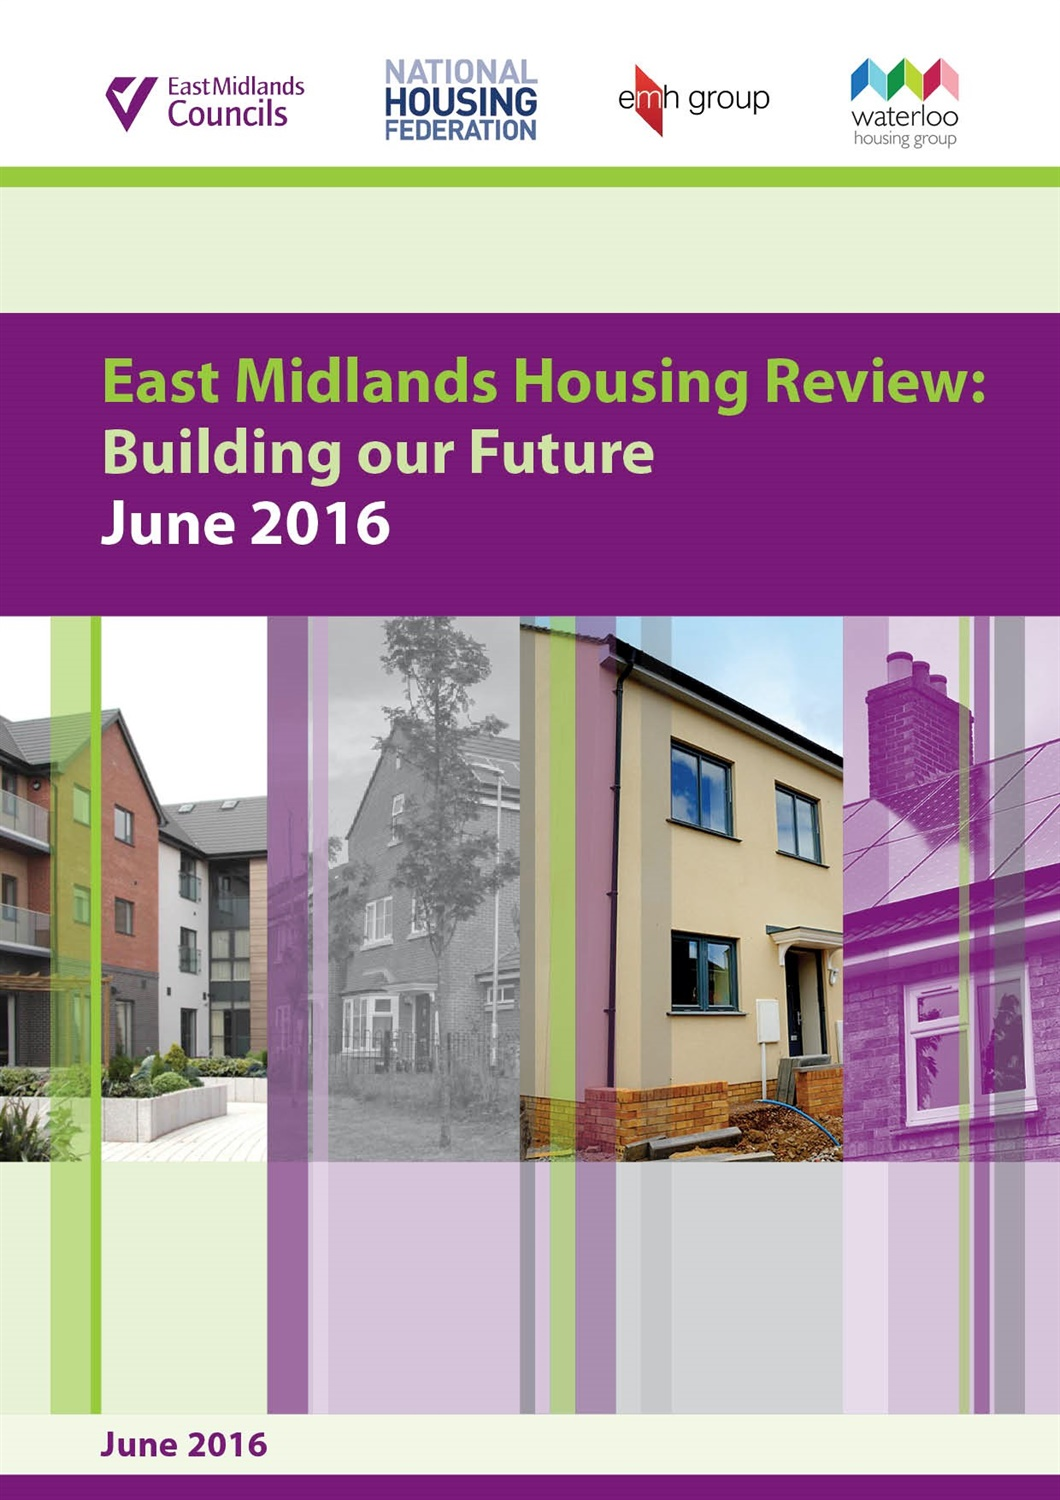 EMC Housing Review June 2016 - Front cover